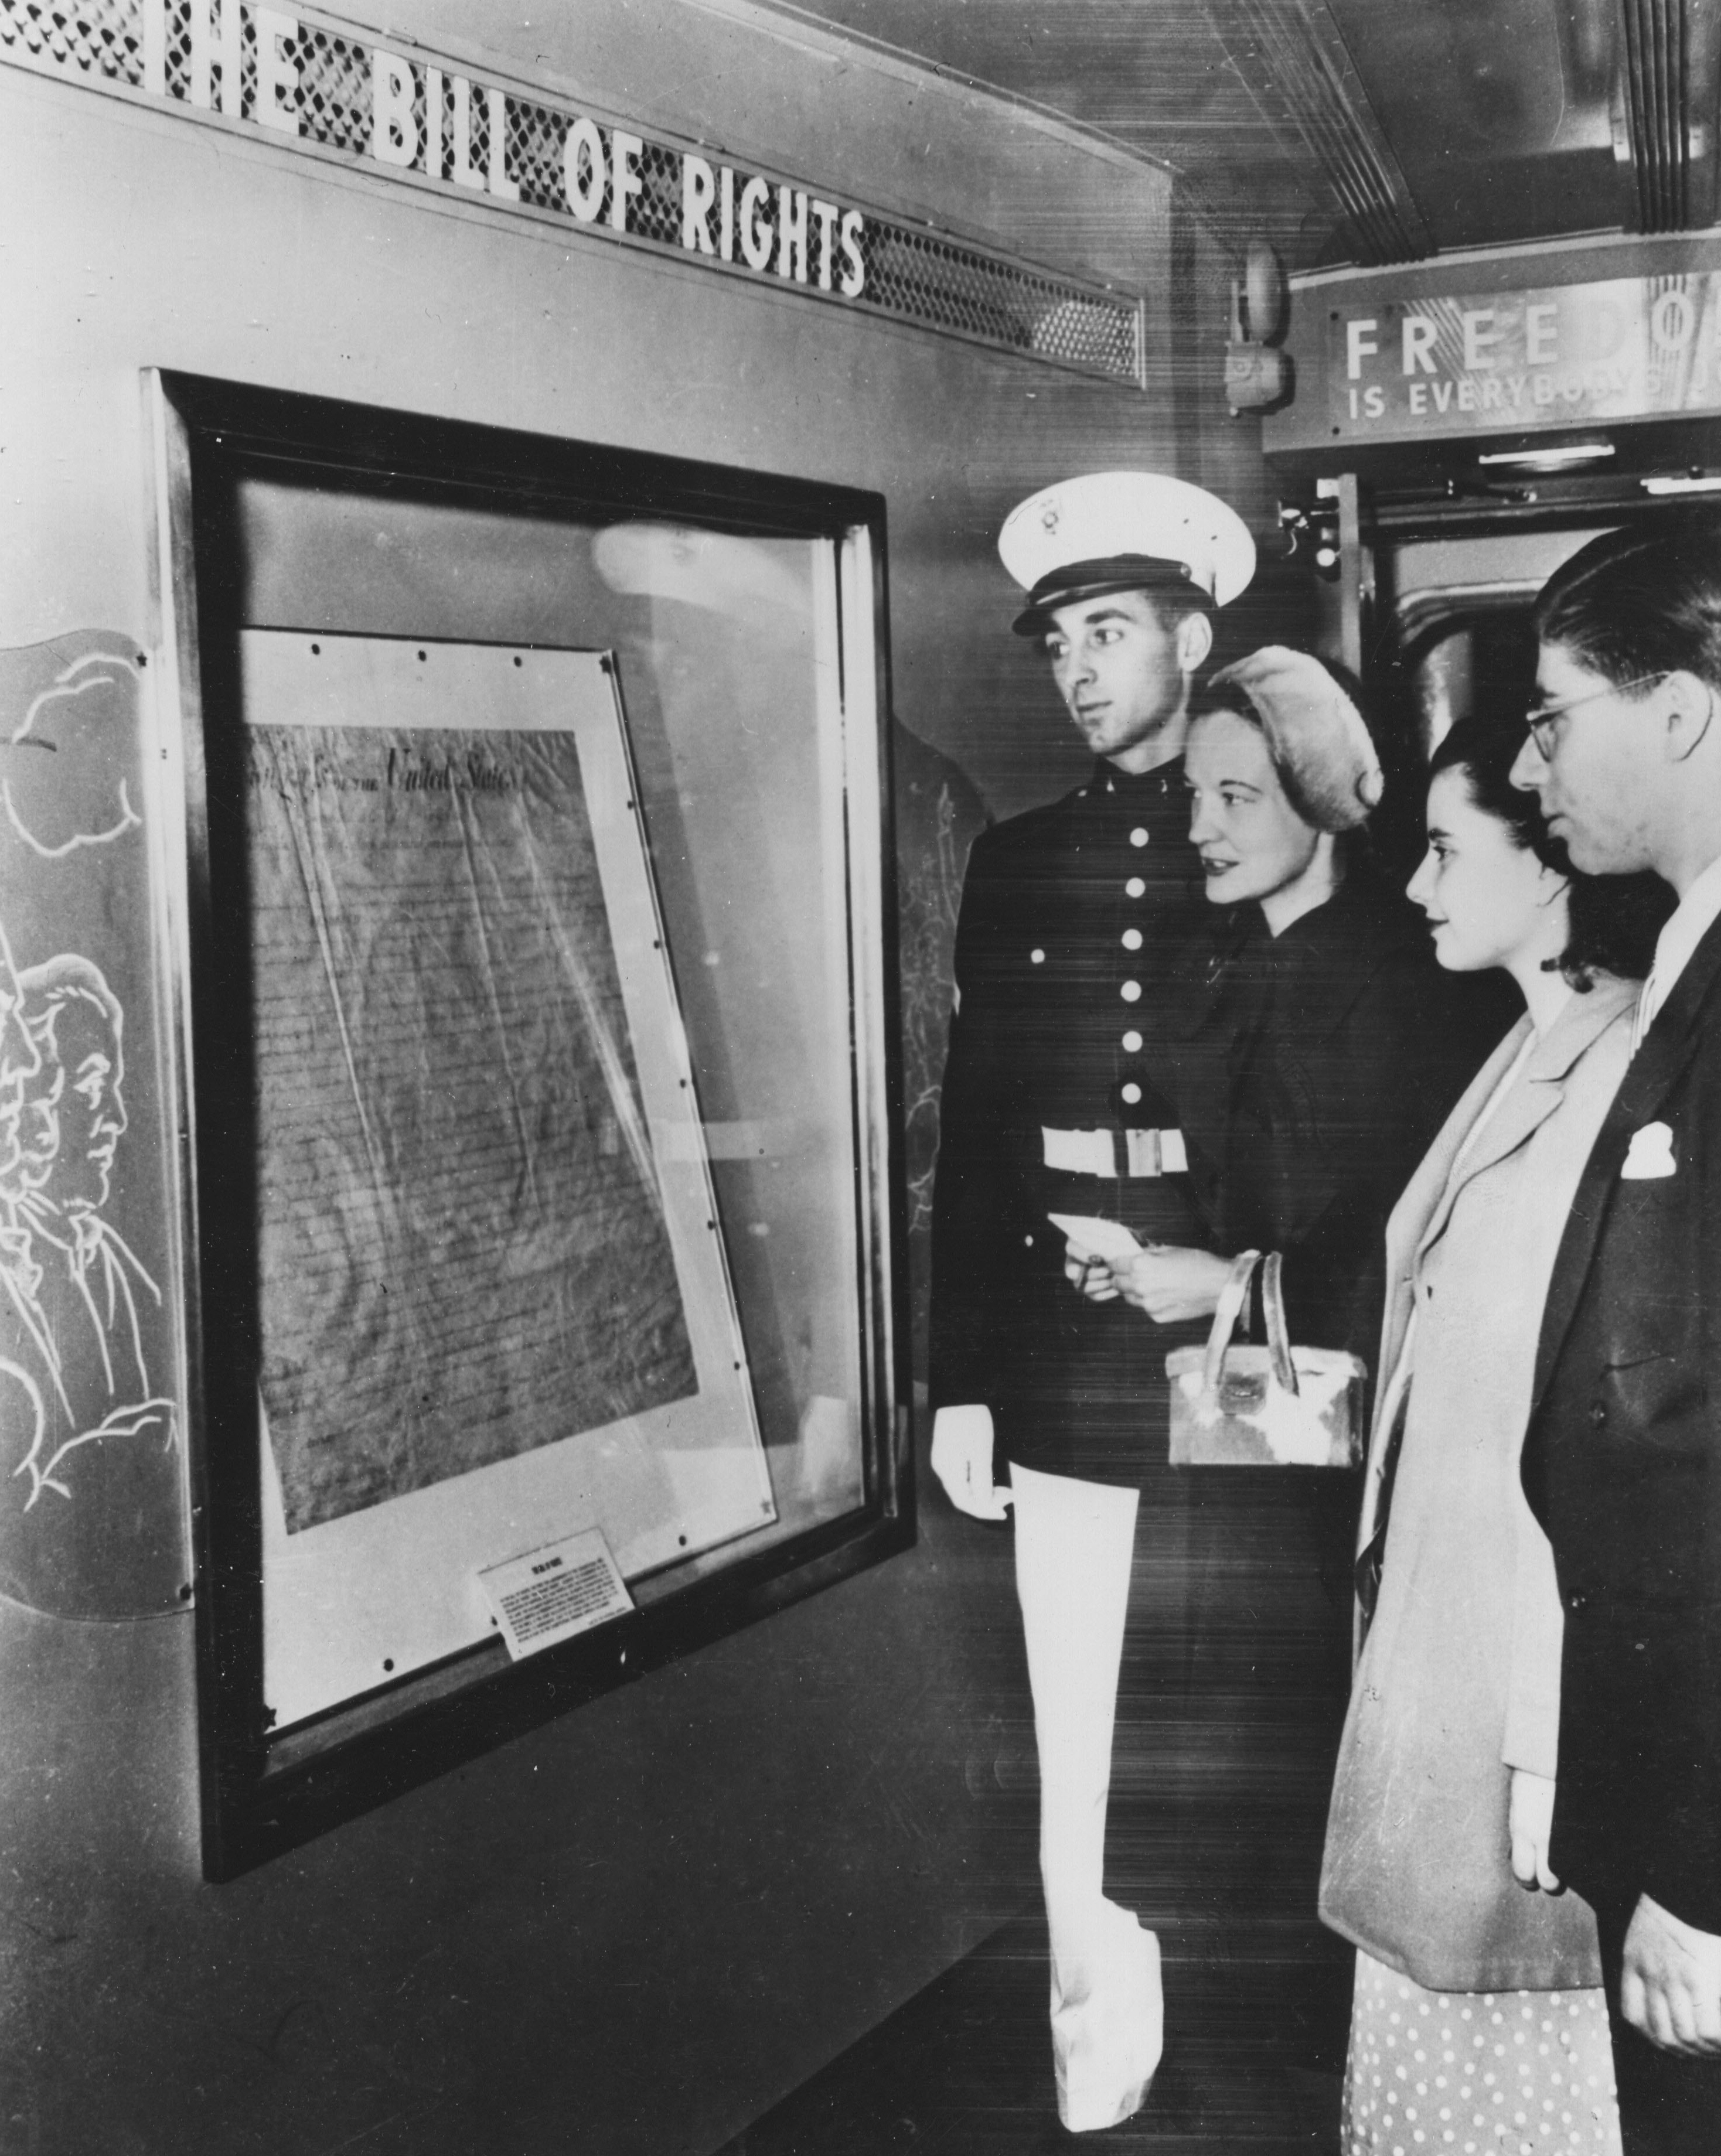 Photograph of visitors looking at the Bill of Rights in the Freedom Train Exhibit, October 20, 1948. (National Archives Identifier 12167308)